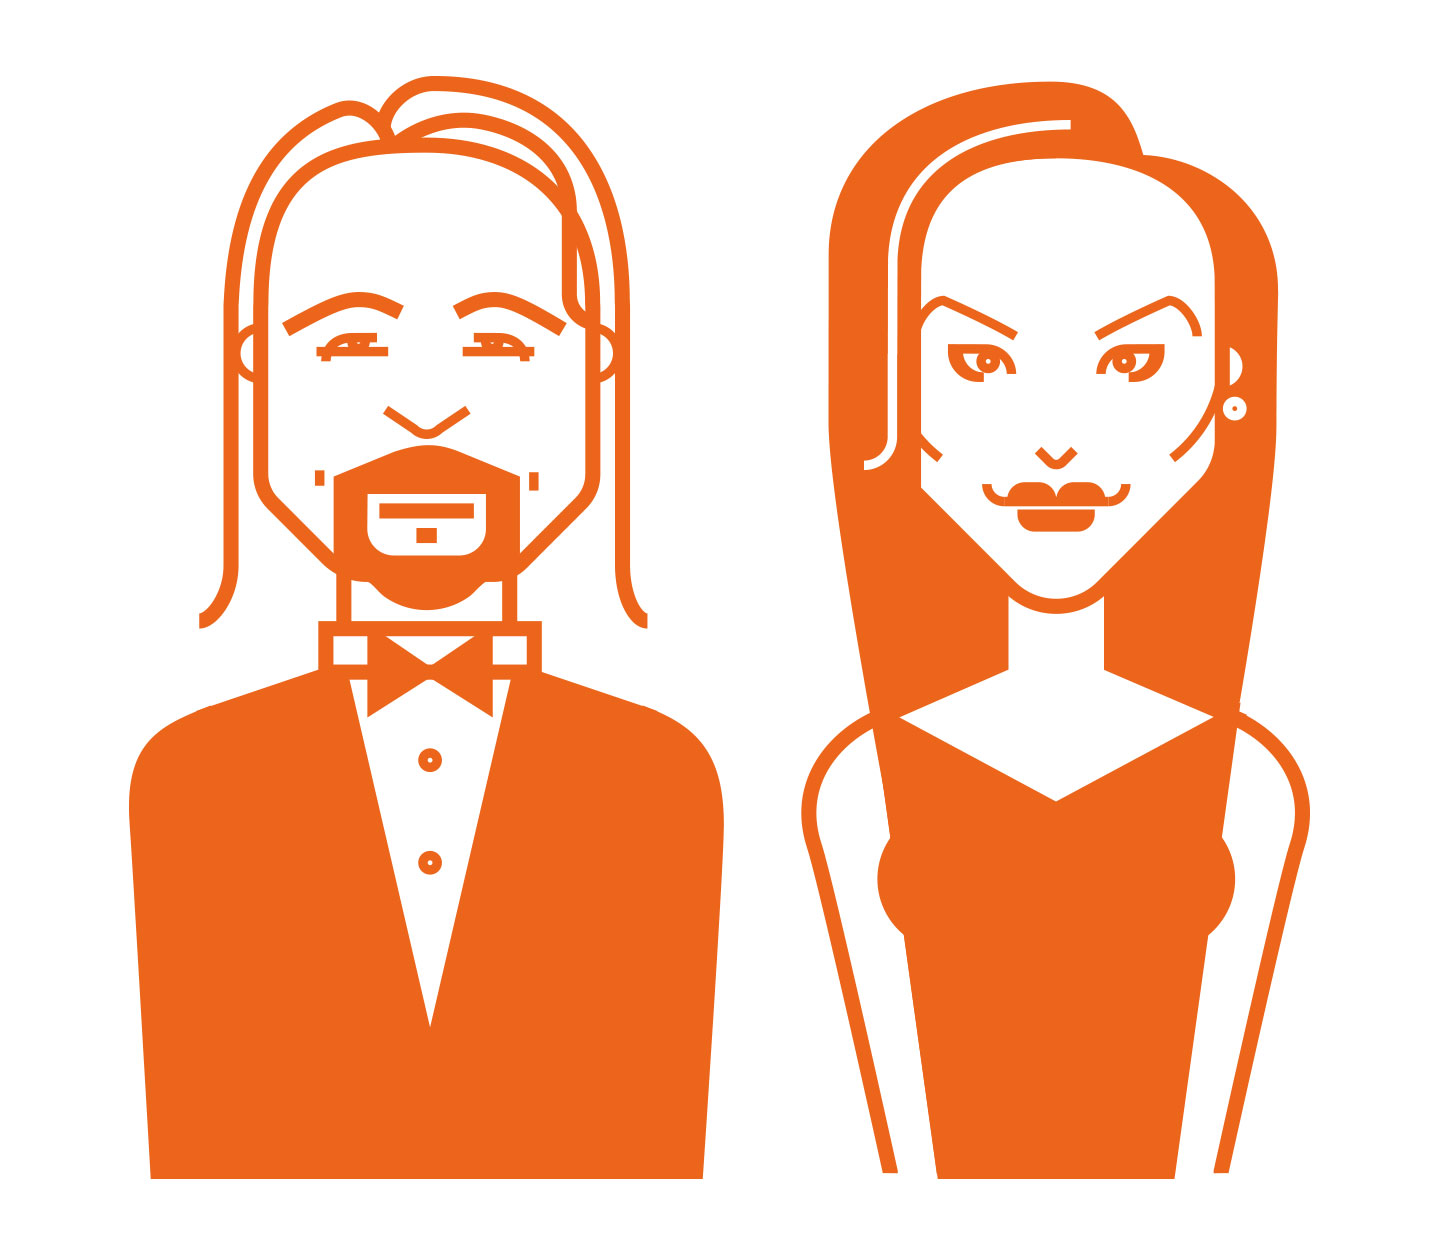 illustration_andre_levy_zhion_vector_outline_celebrity_portrait_brangelina_ing-diba_brad_pitt_angelina_jolie_geometric.jpg